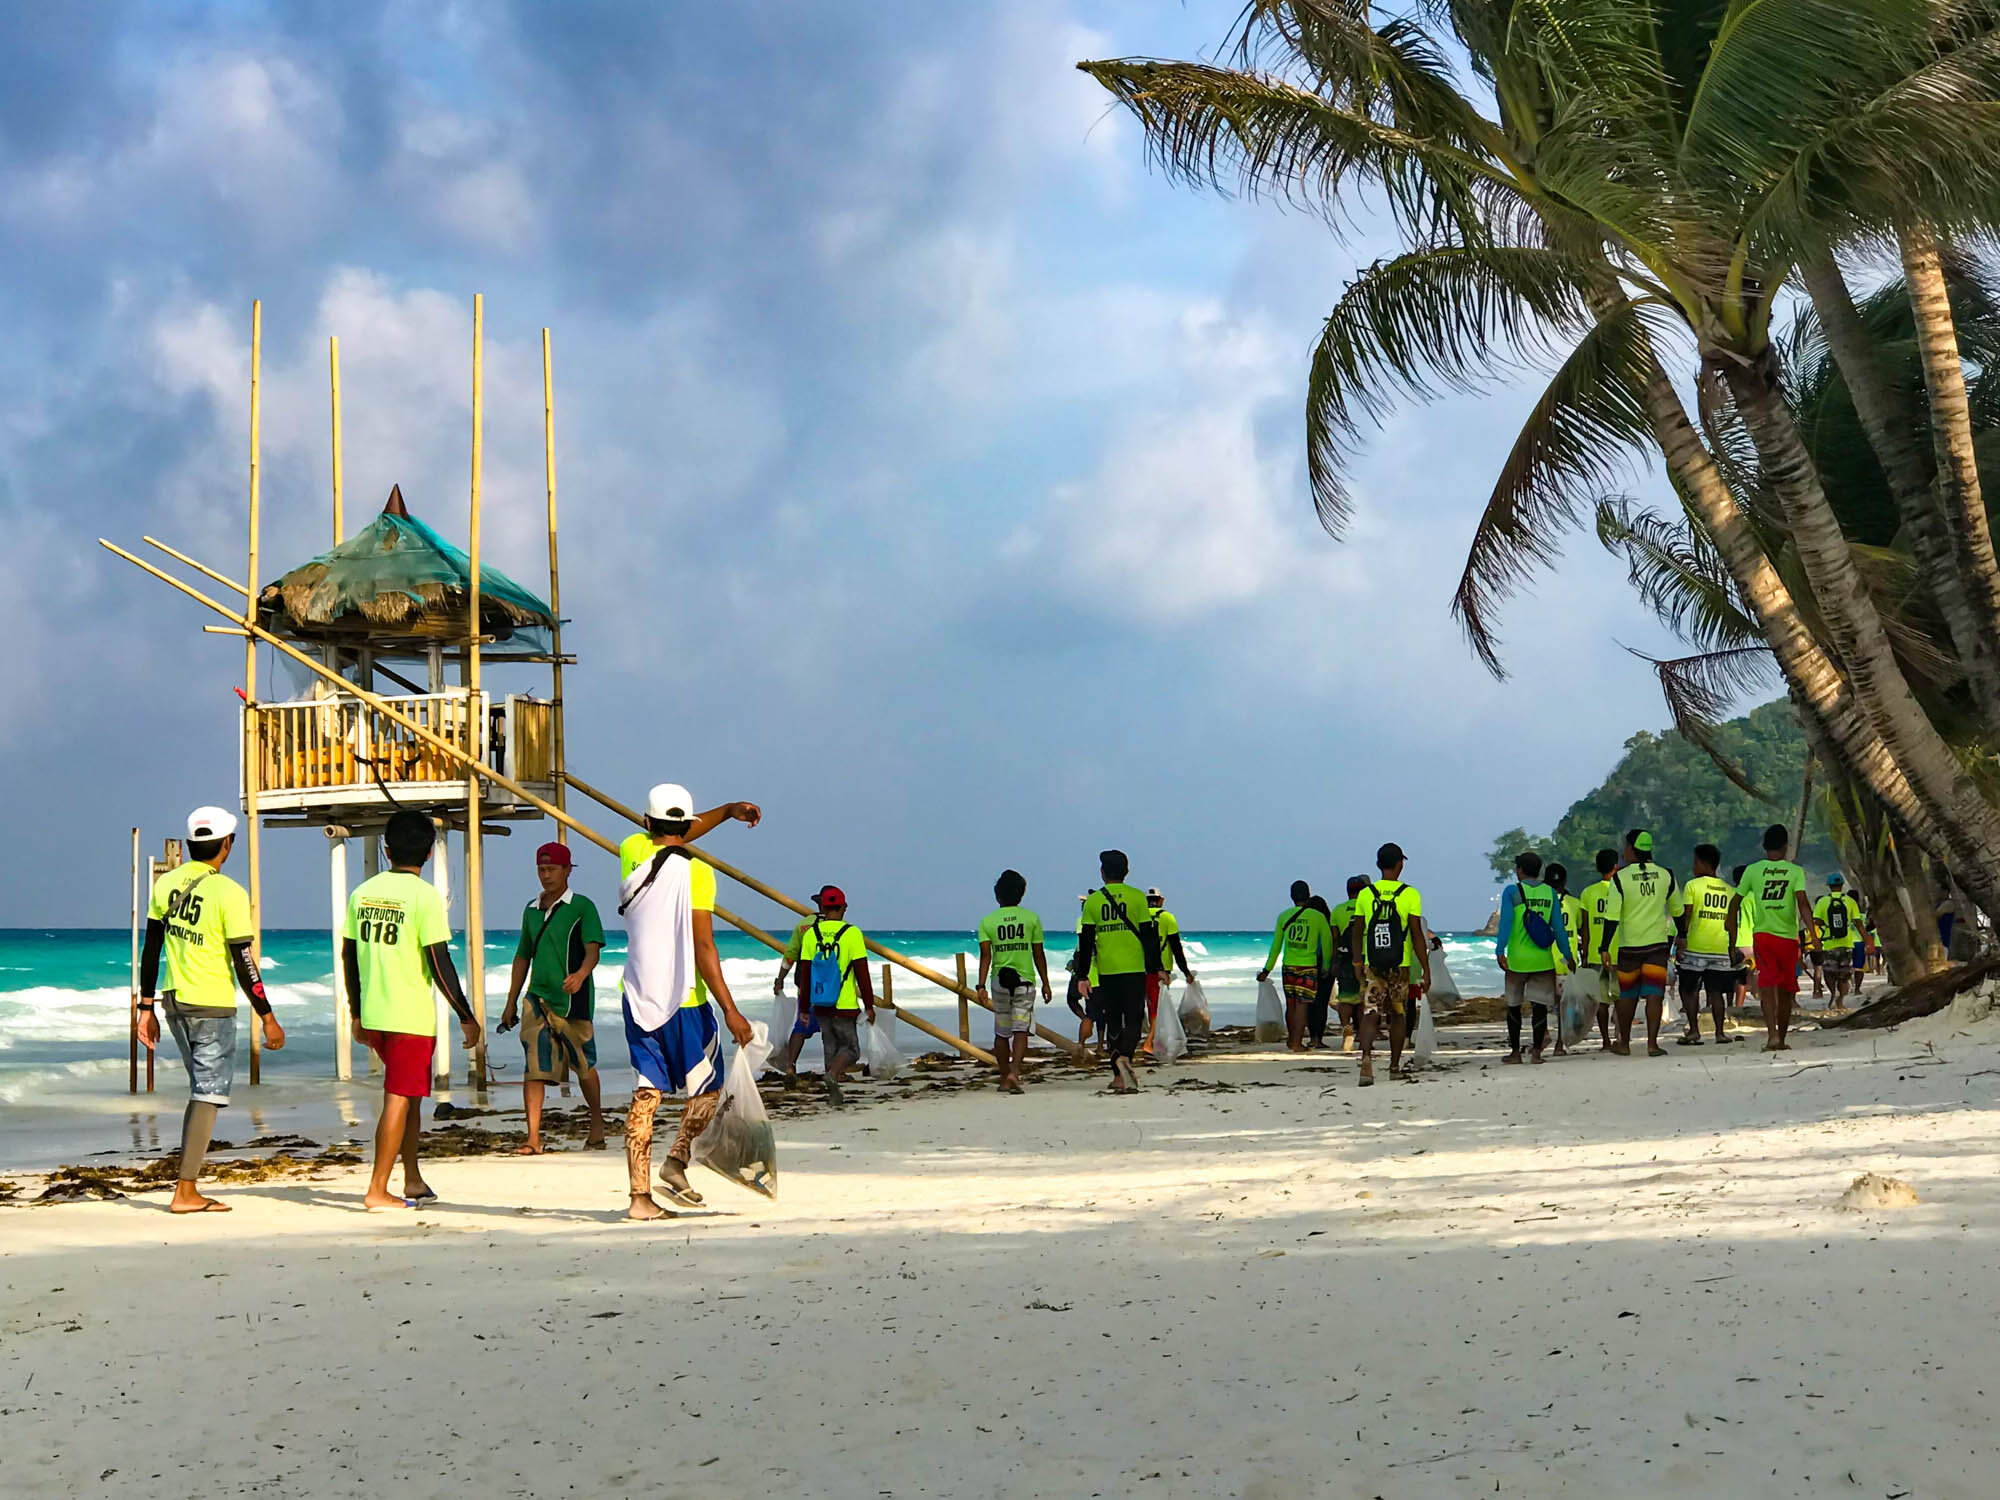 2019, White Beach Station 1. I was having my morning coffee when I saw these instructors on their way to work picking up trash.